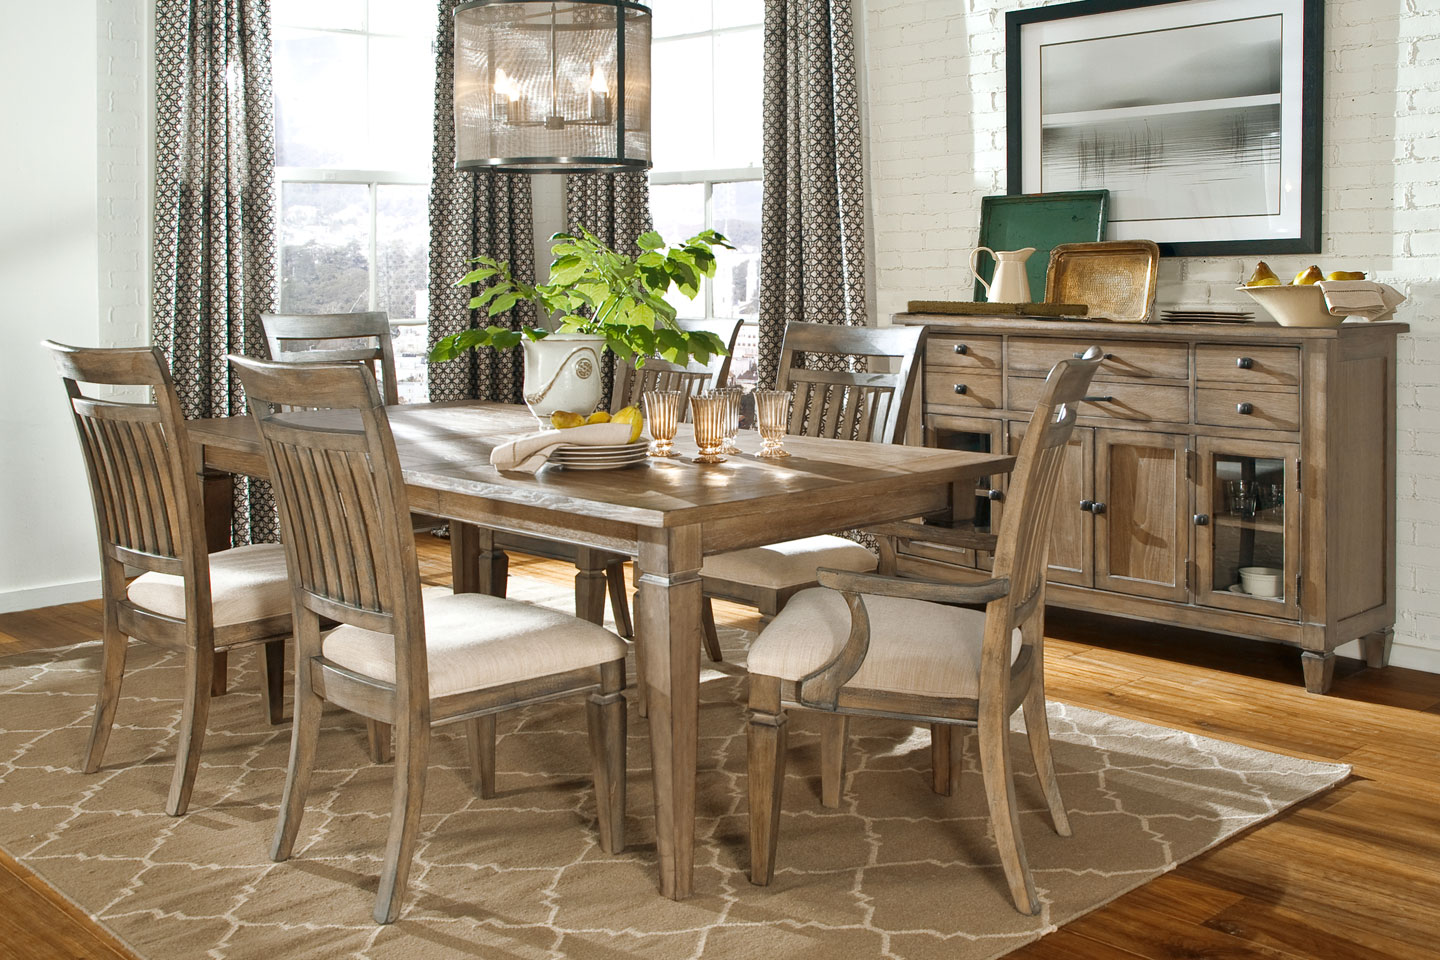 Rustic Dining Room Tables With Bench rustic round dining room table - creditrestore